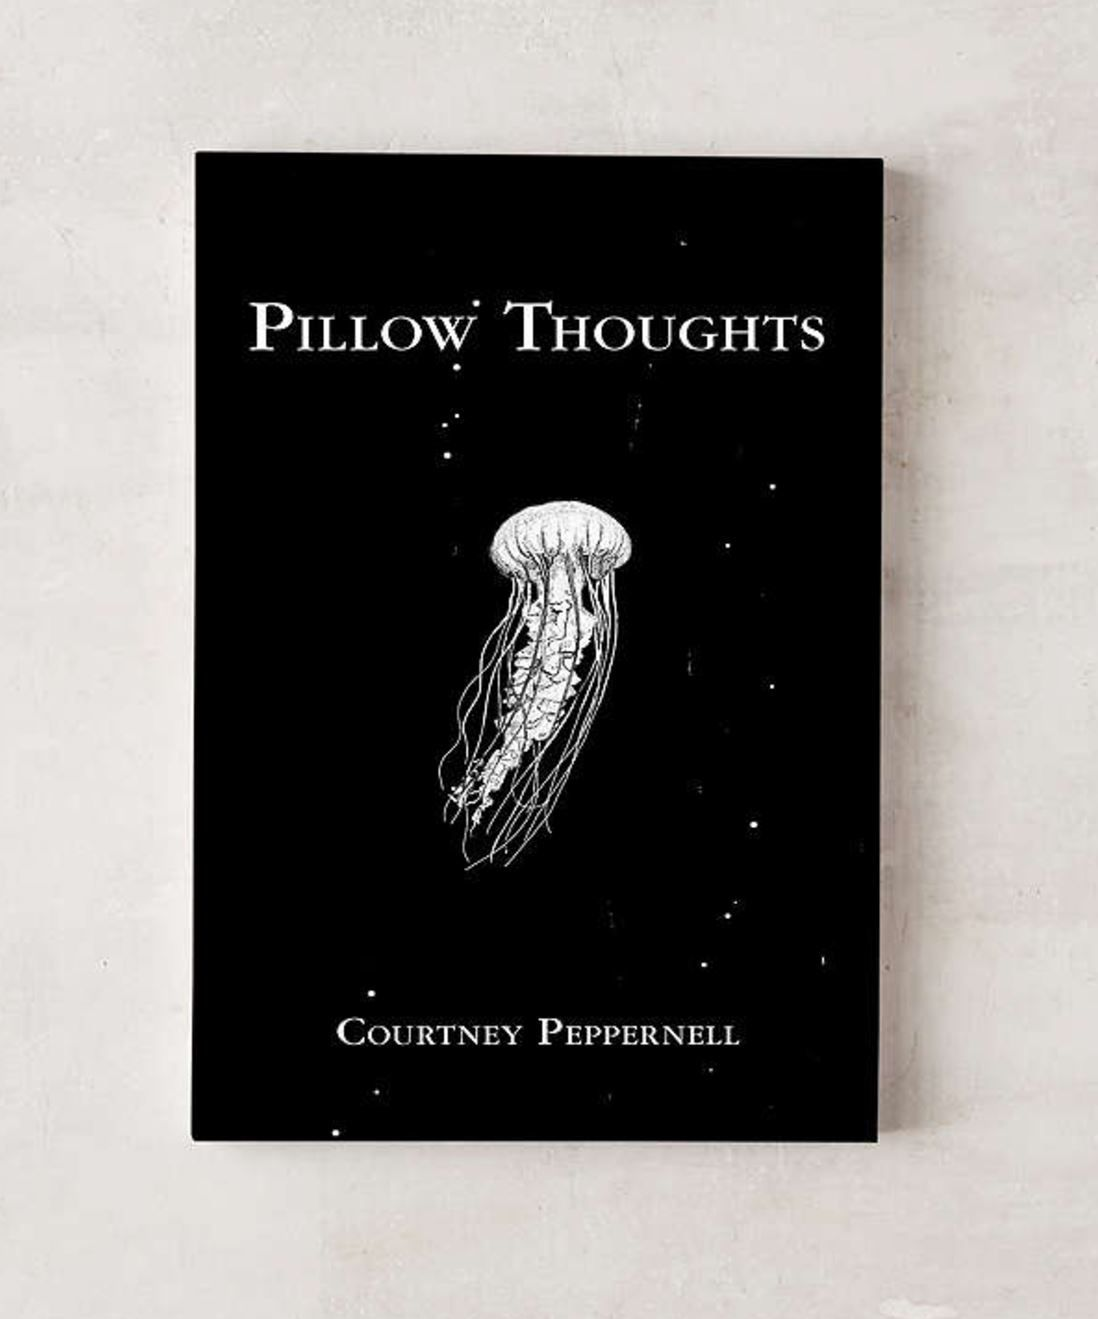 Pillow Thoughts By Courtney Peppernell - Pillow Thoughts available from 10/10/2017 at Urban